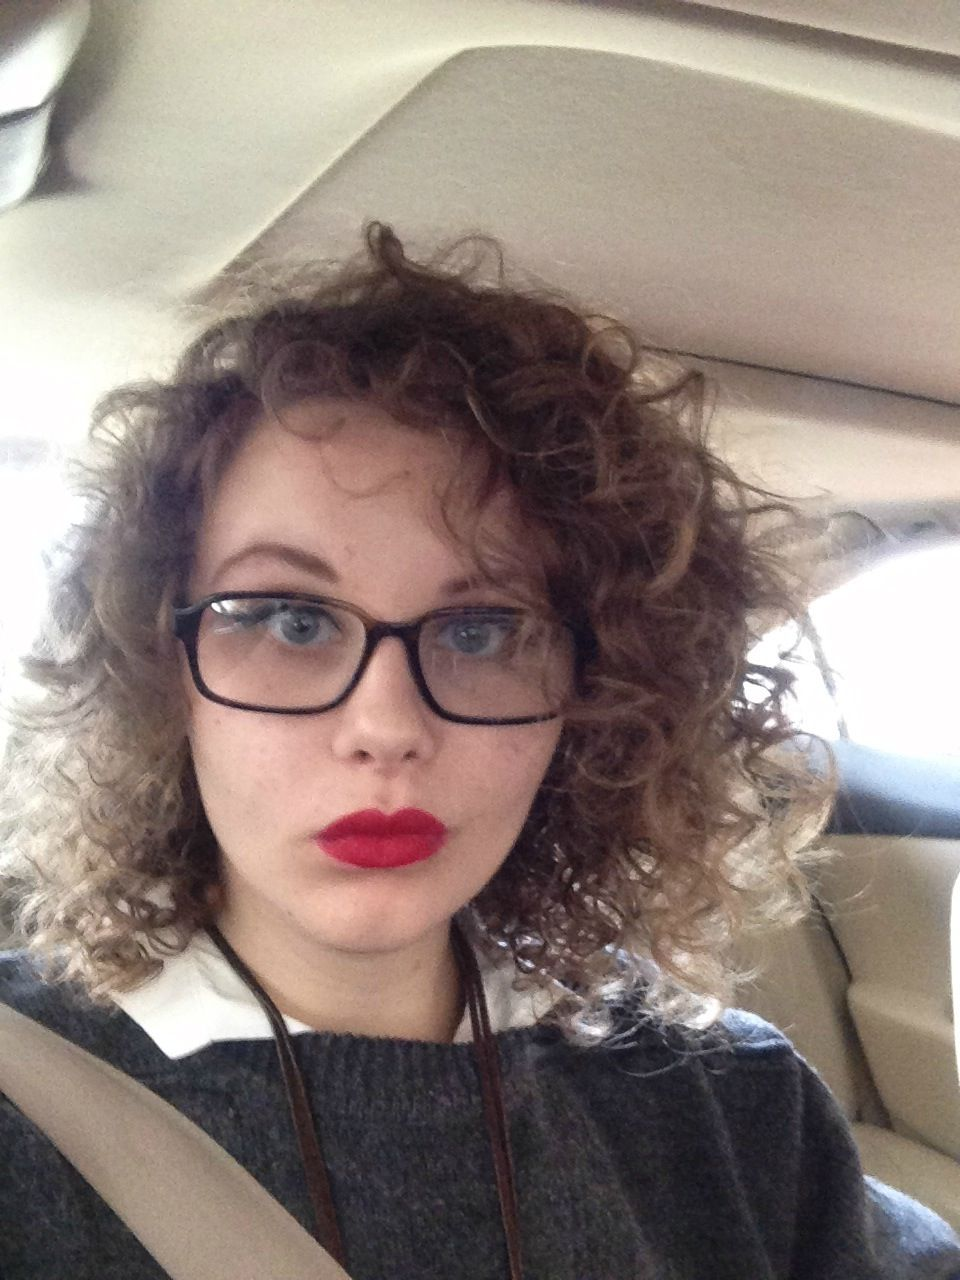 curly hair, red lips, glasses, hipster girl | 3/4 indie 1/4